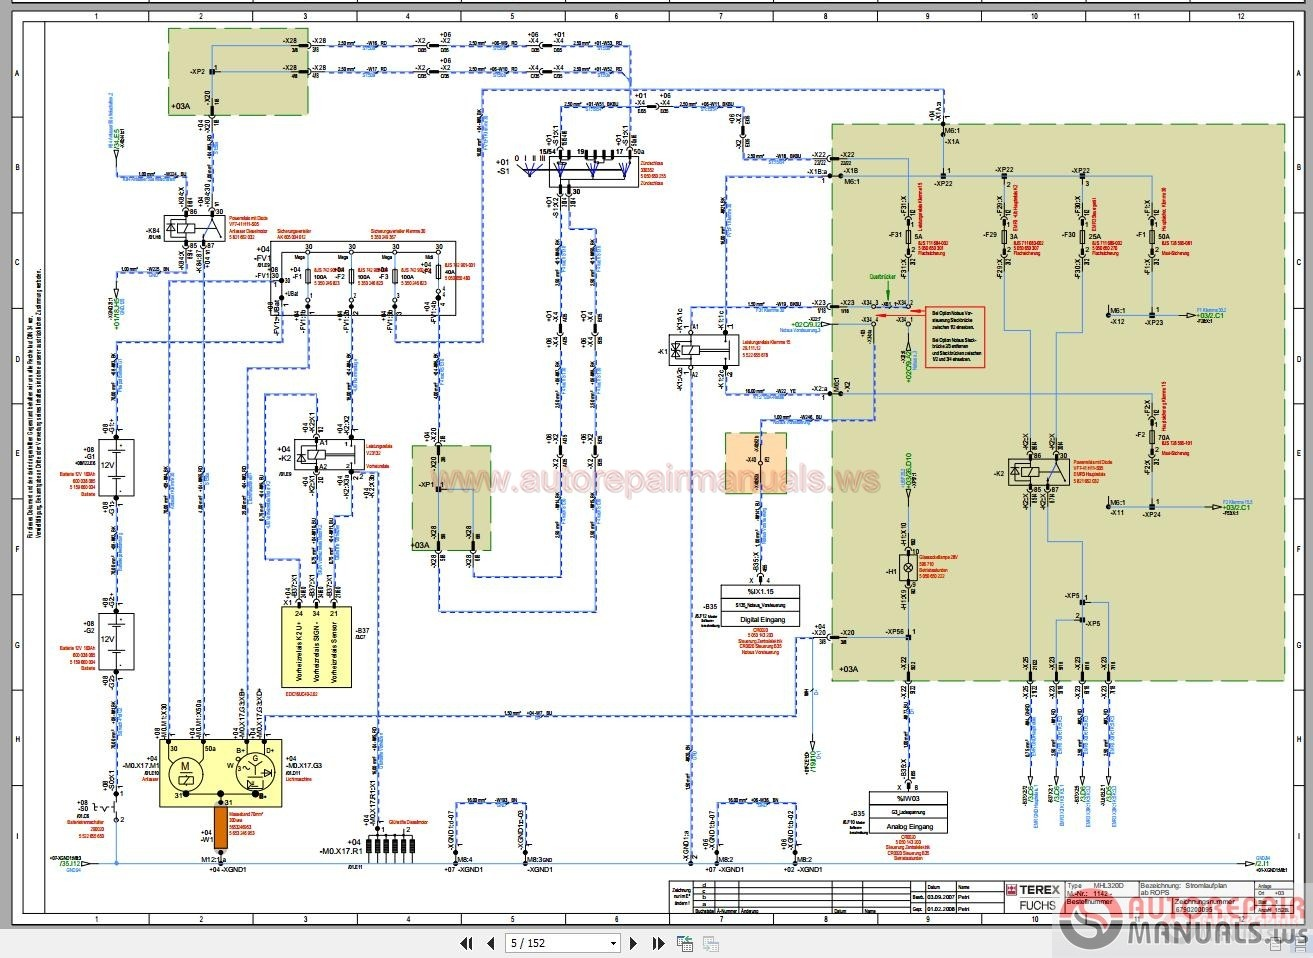 terex fuchs mhl320d wiring diagram part 1 auto repair manual forum heavy equipment forums